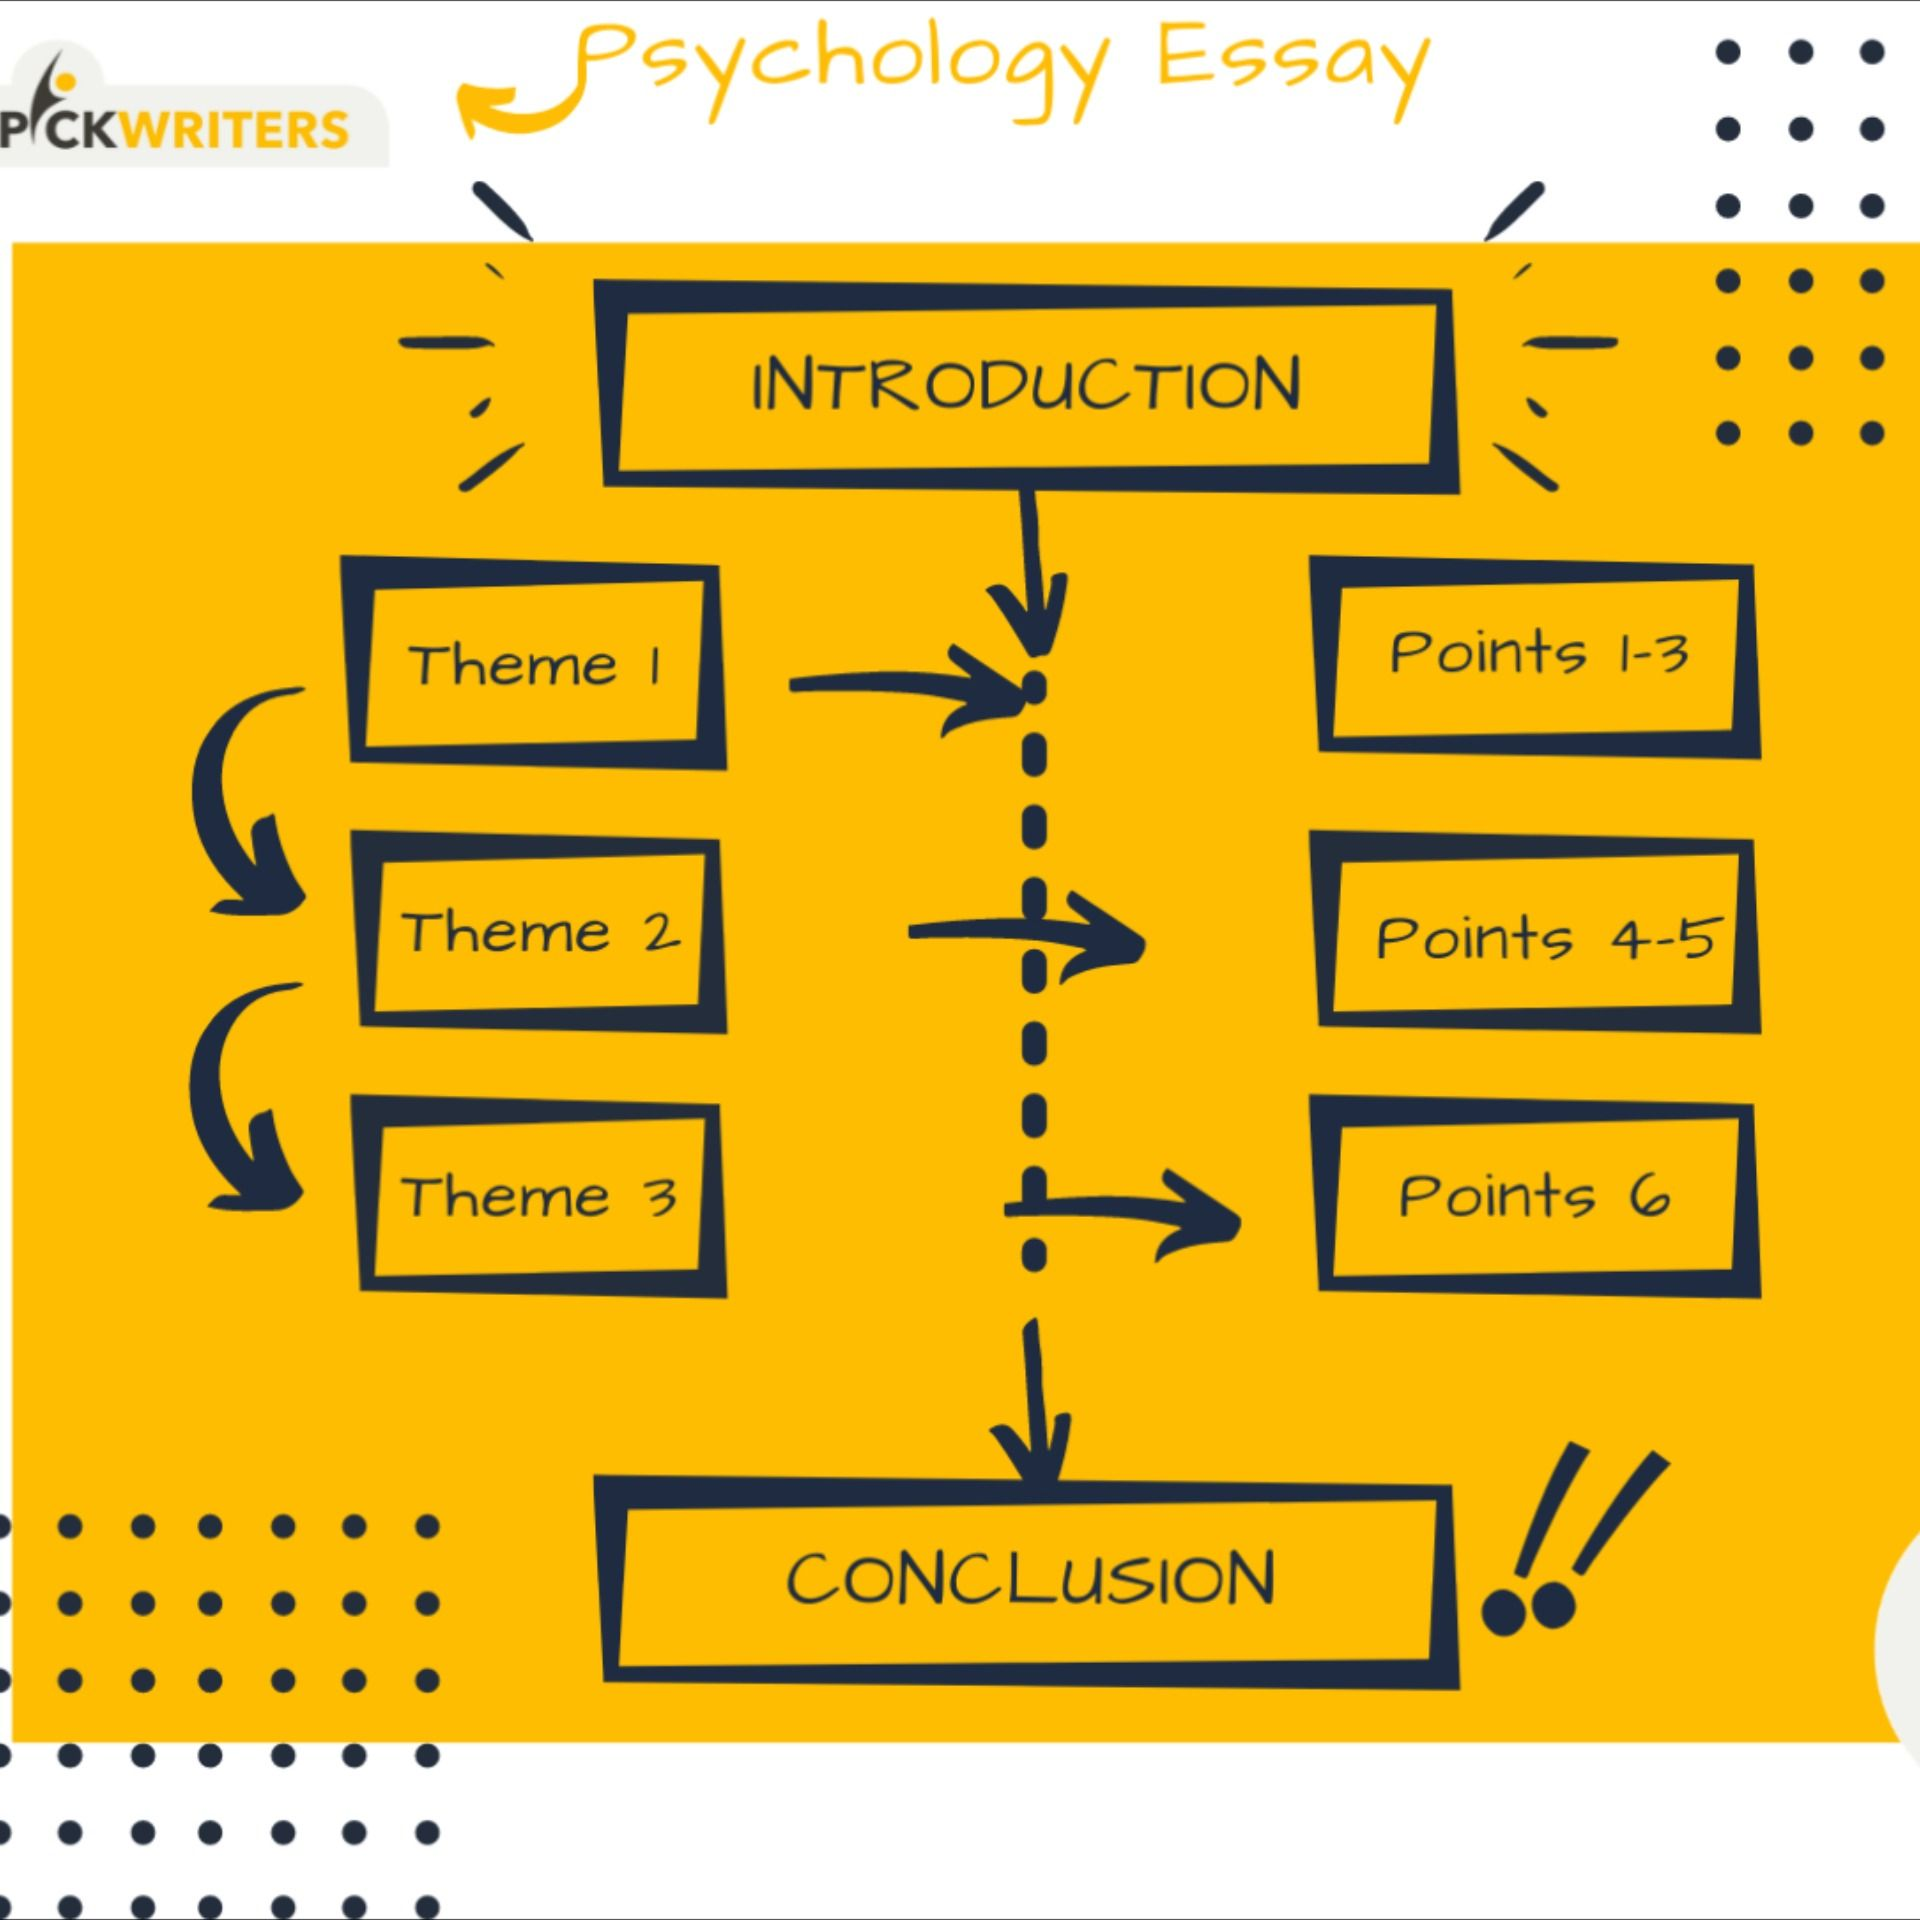 Psychology essay writing - Psychology essay structure - how to